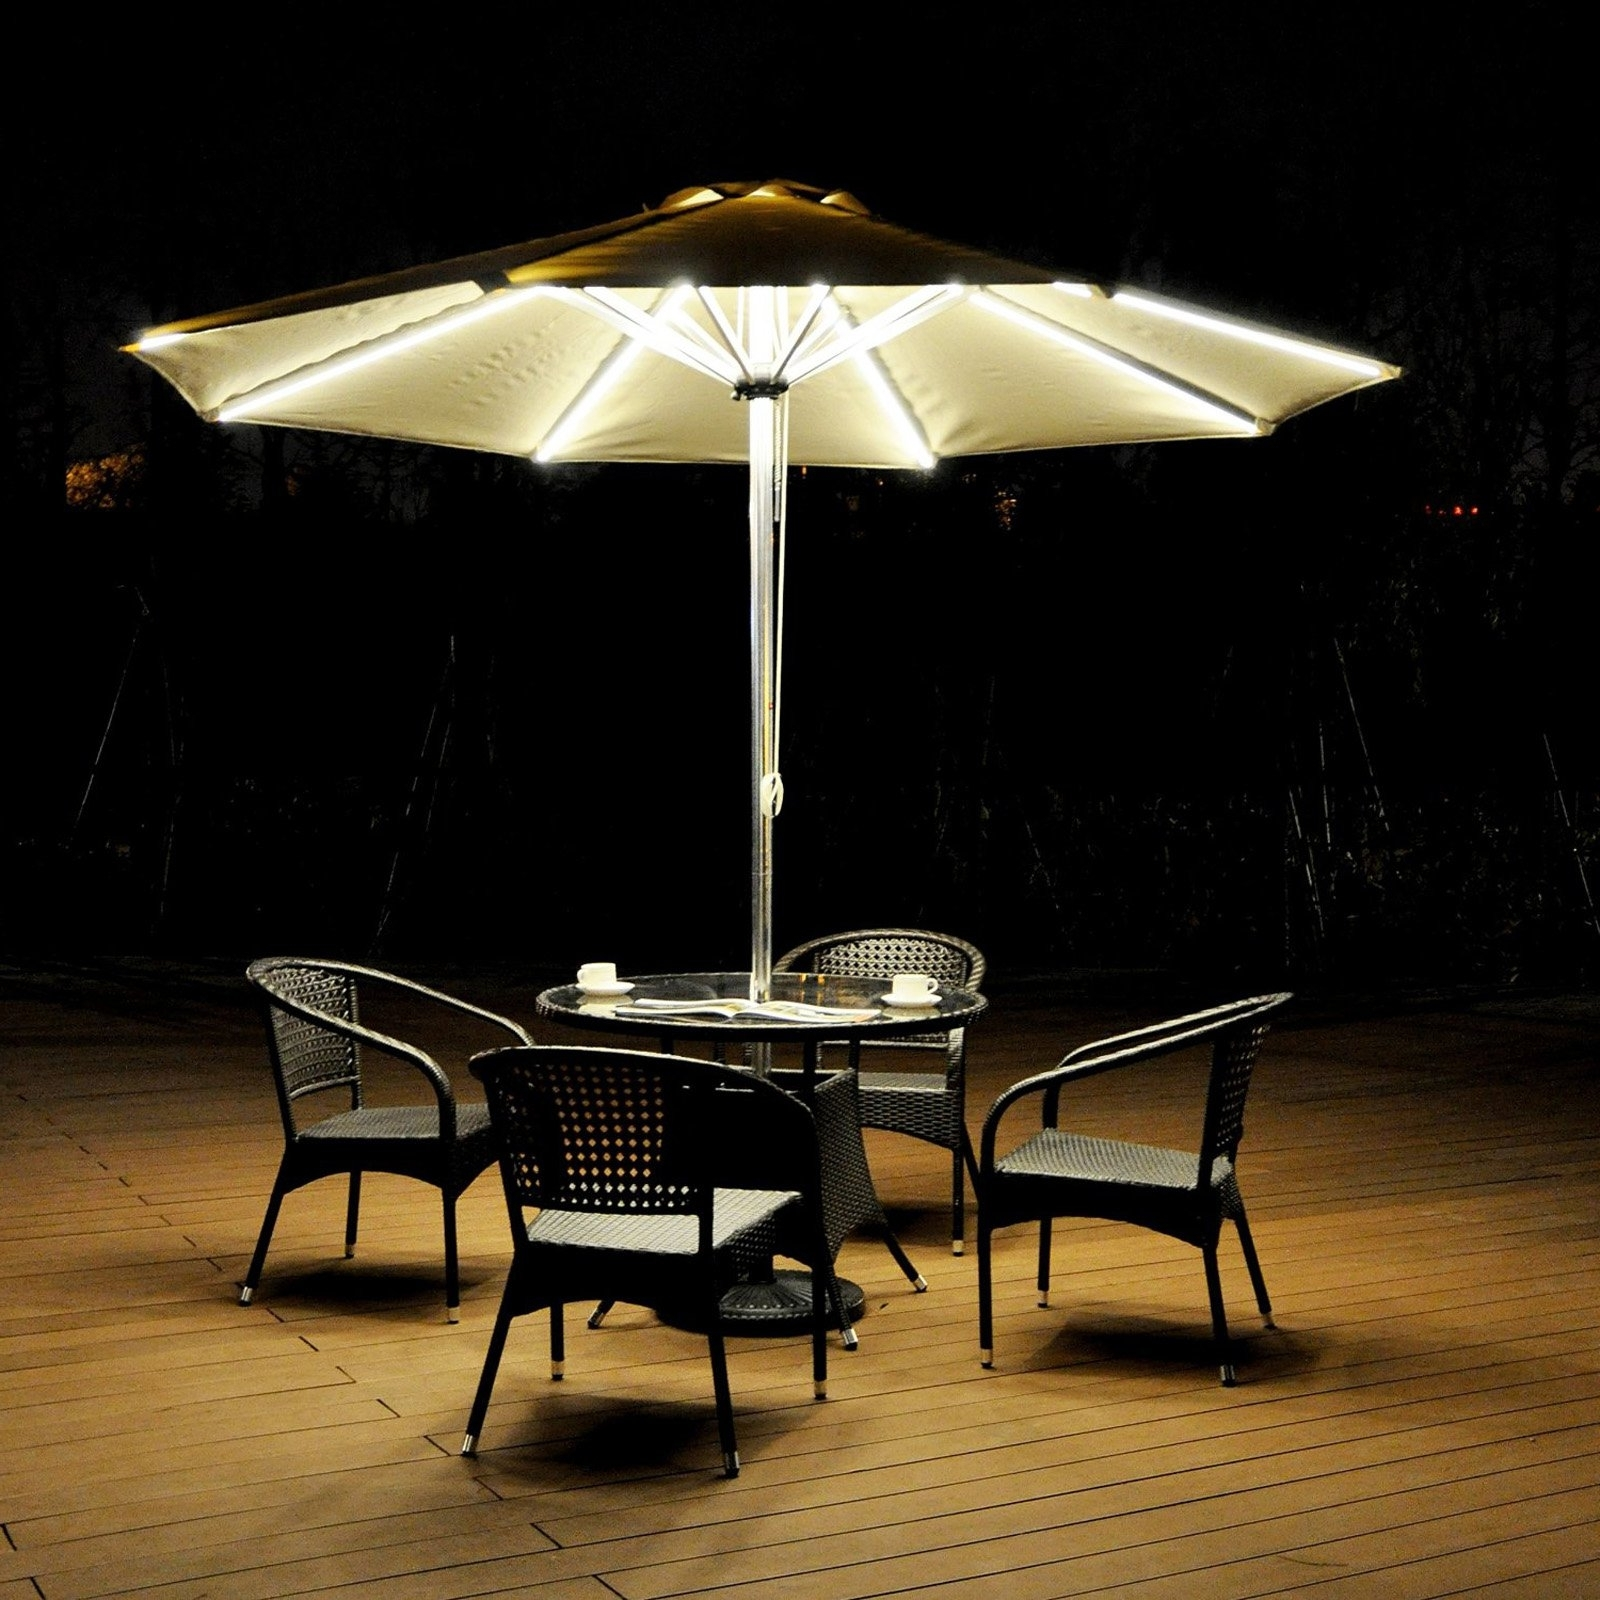 Best And Newest Sunbrella Patio Umbrella With Lights Intended For Galtech Sunbrella 11 Ft Auto Tilt Patio Umbrella With Led (View 3 of 20)